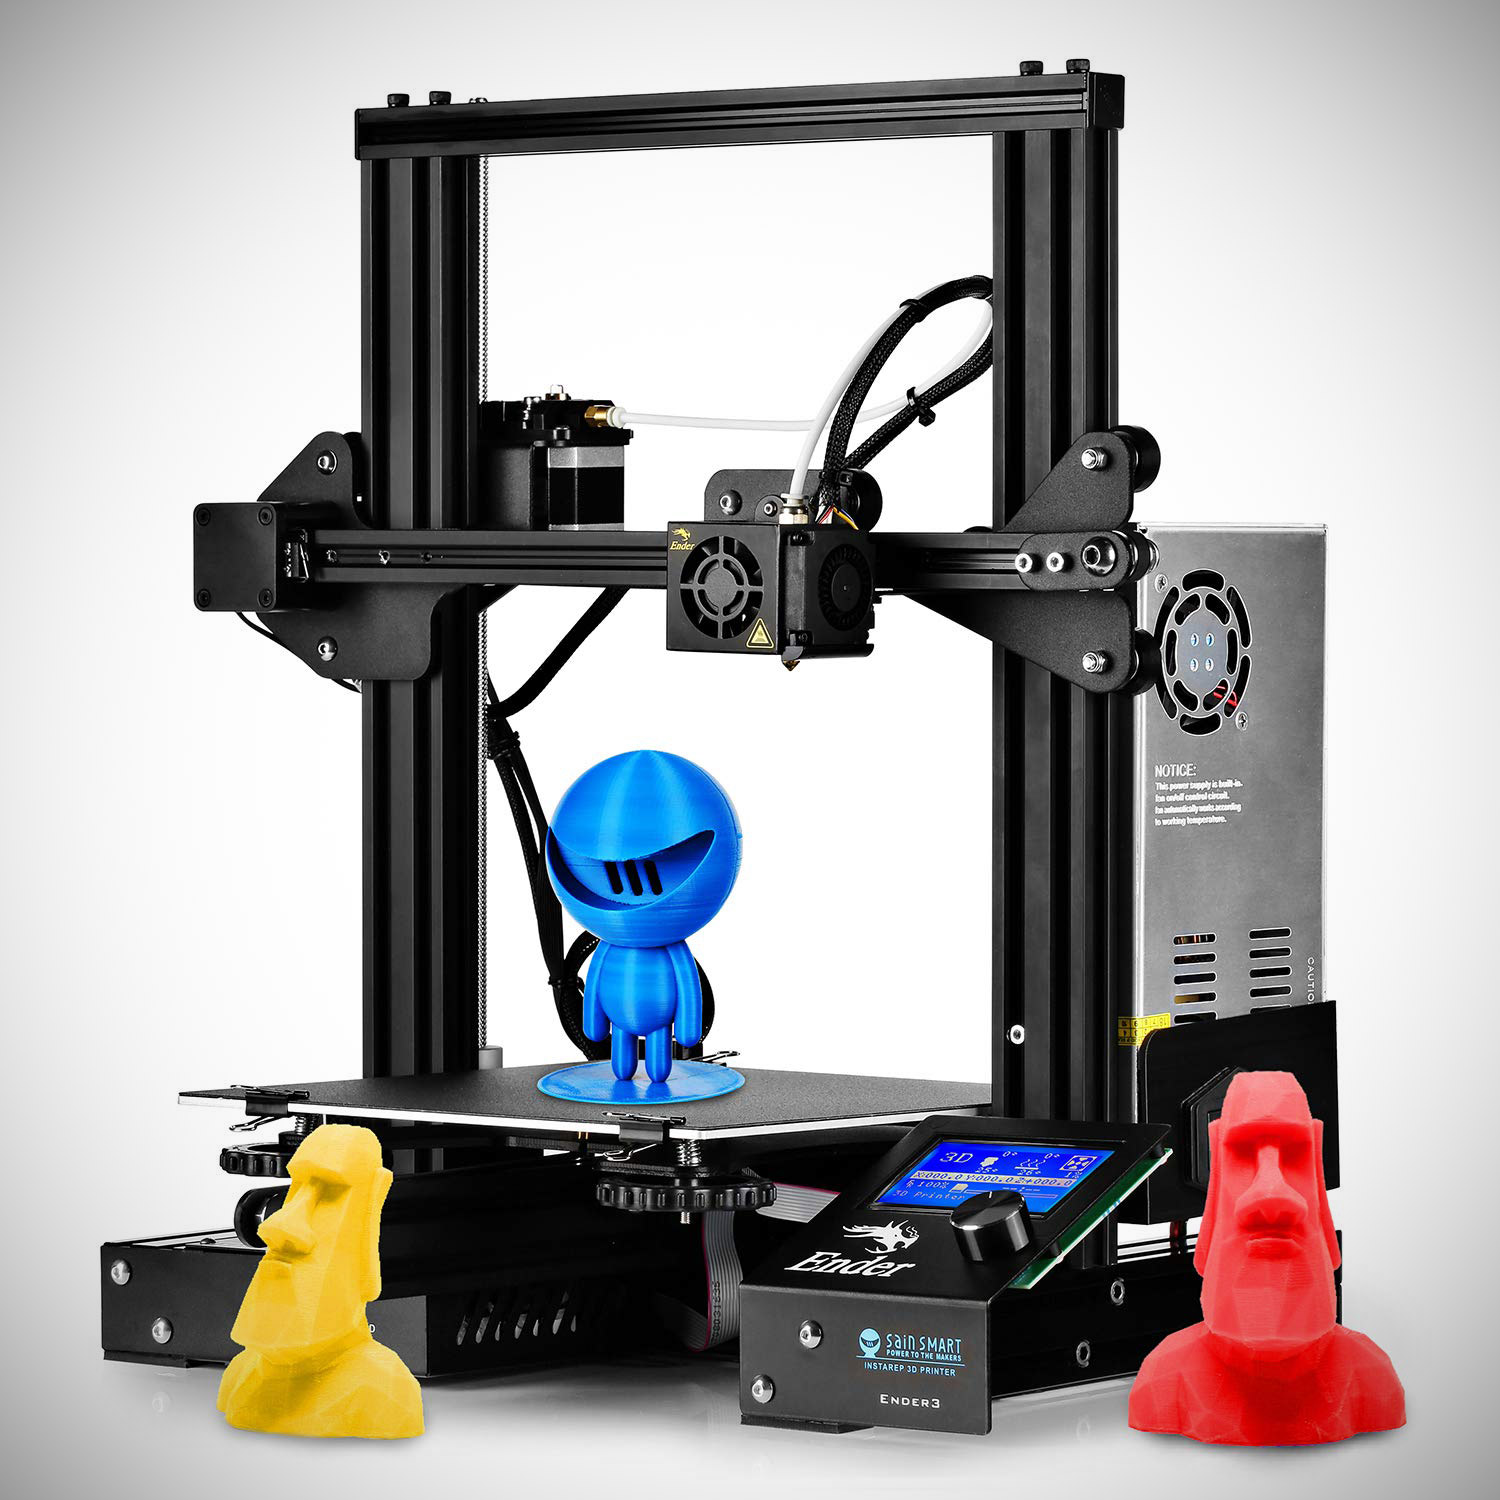 SainSmart Creality Ender-3 3D Printer